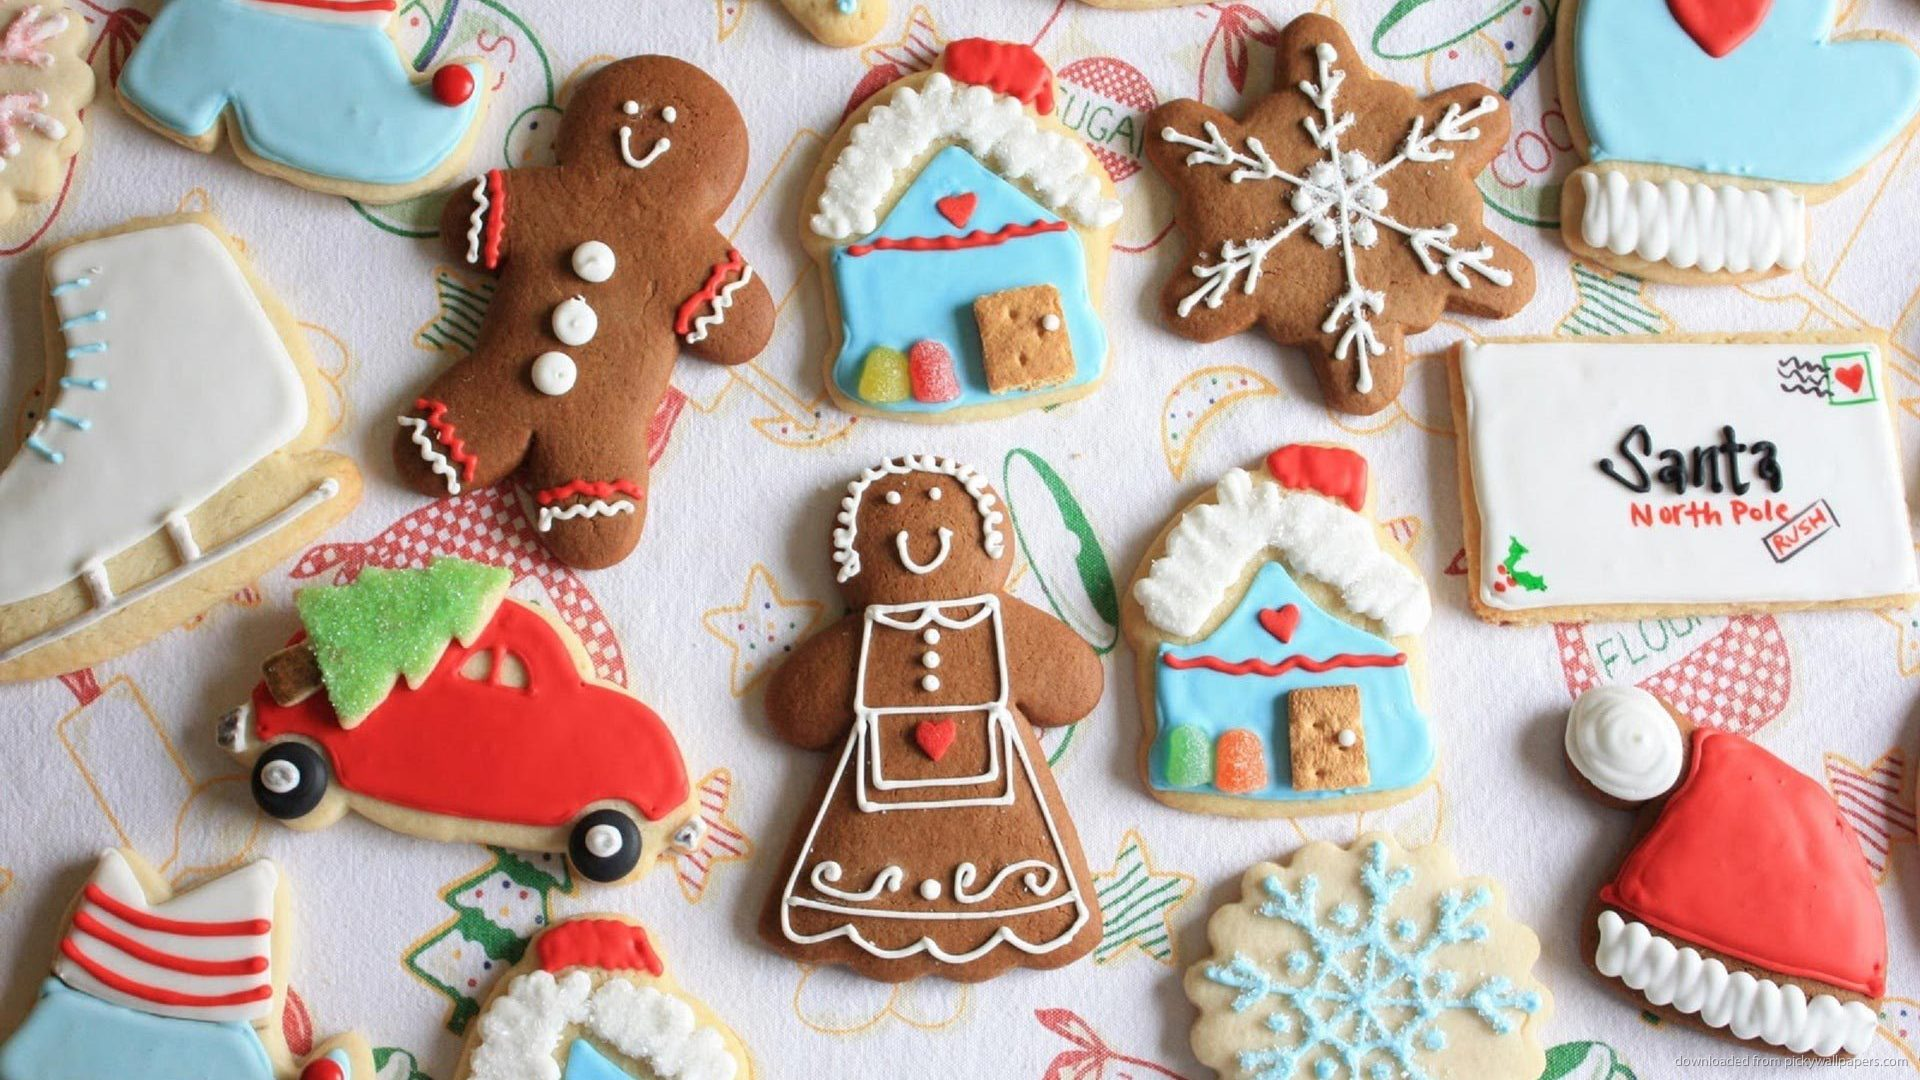 Pretty Christmas Cookies Wallpaper 1920x1080 24854